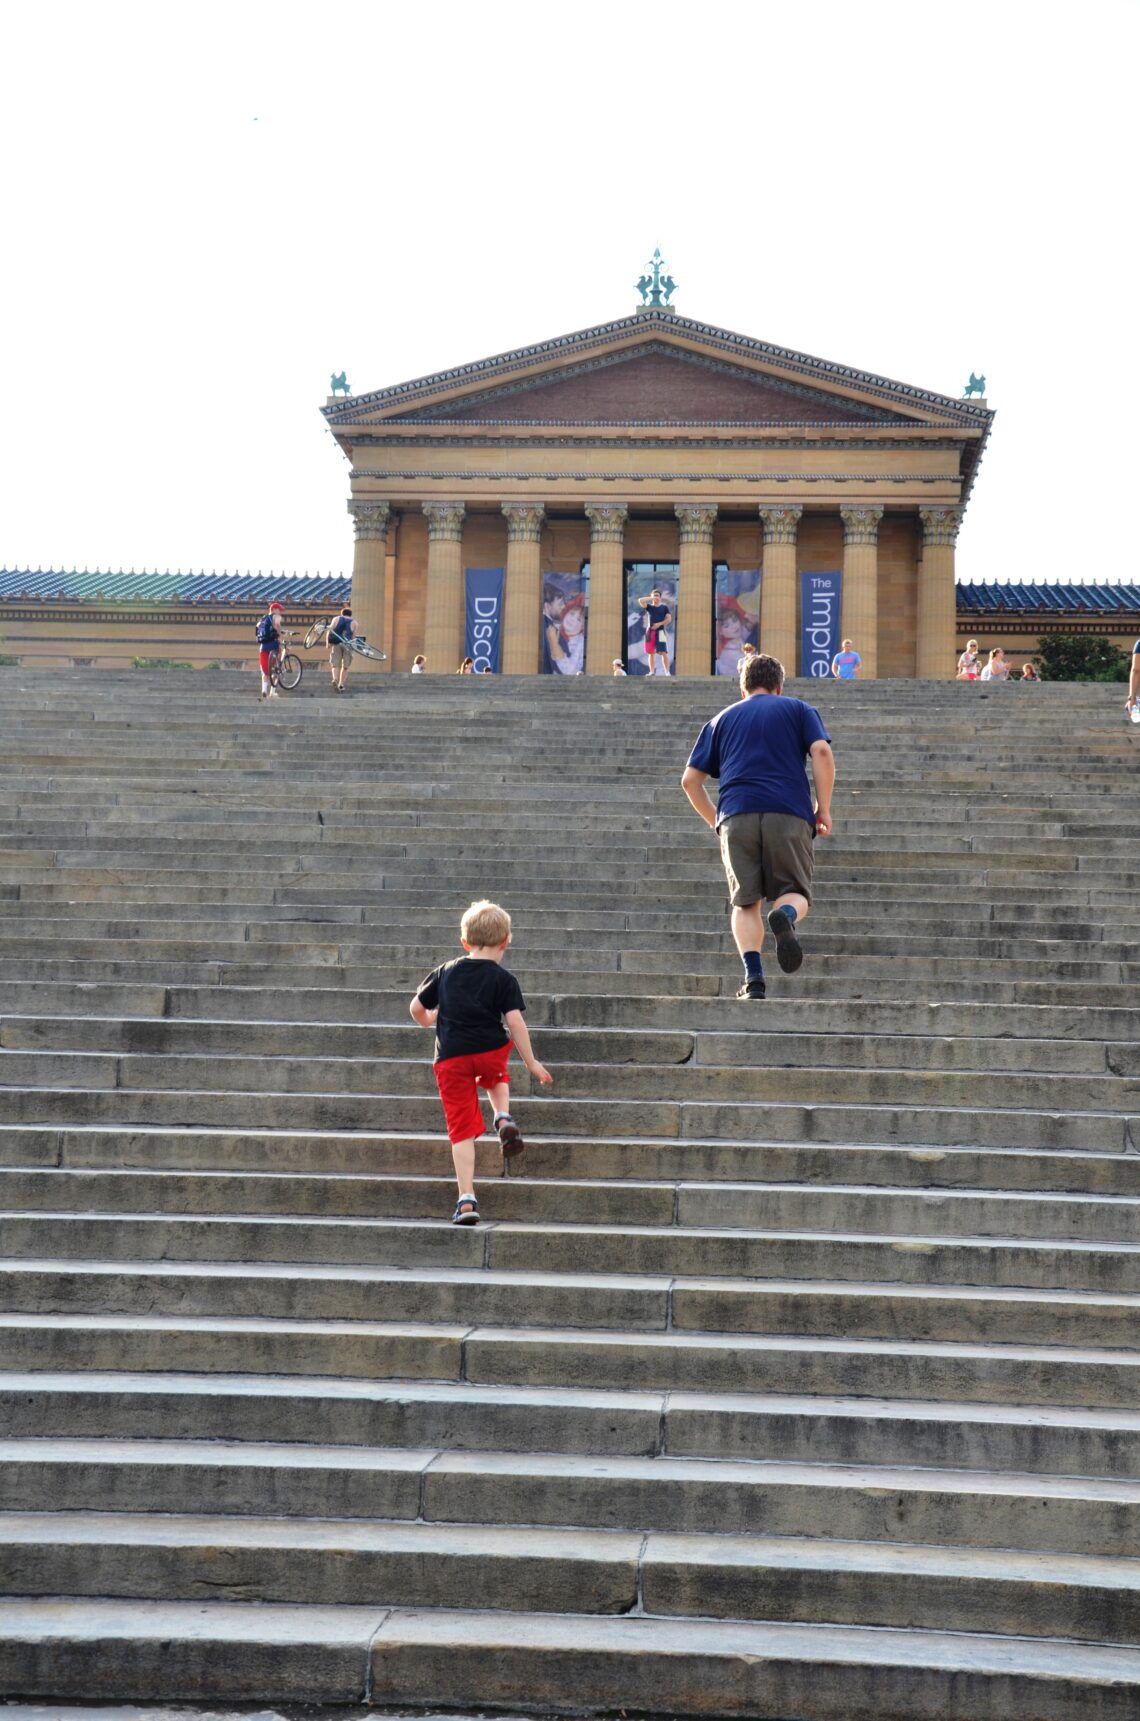 Who's first? Paul and Yuri seen from the back. Running upstairs on the Rocky steps. Paul is faster than Yuri.